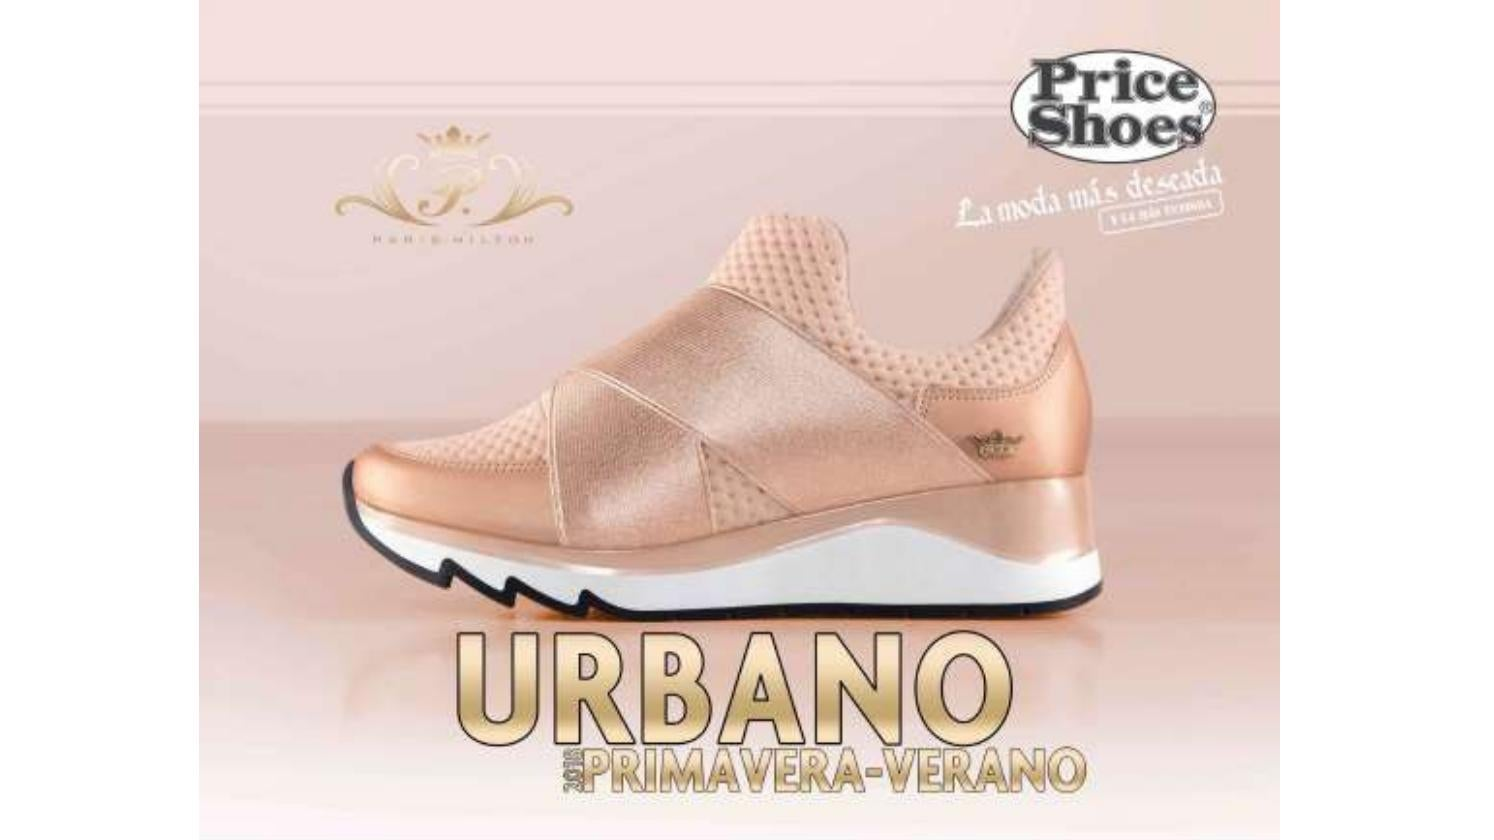 32a005c8 Price Shoes Urbano 2018 by Price Shoes Oficial - issuu